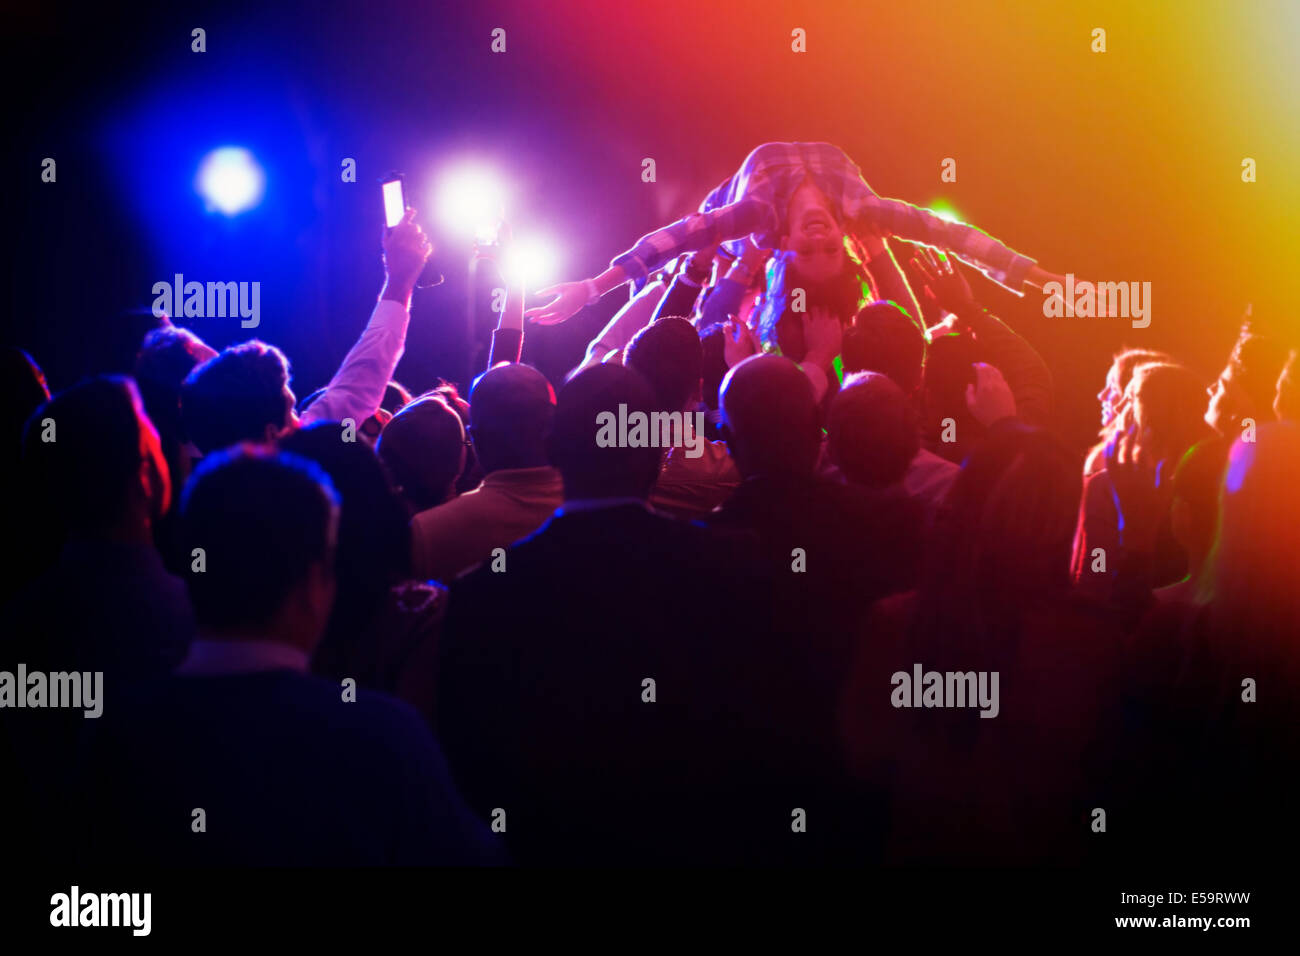 Woman crowd surfing au concert Photo Stock